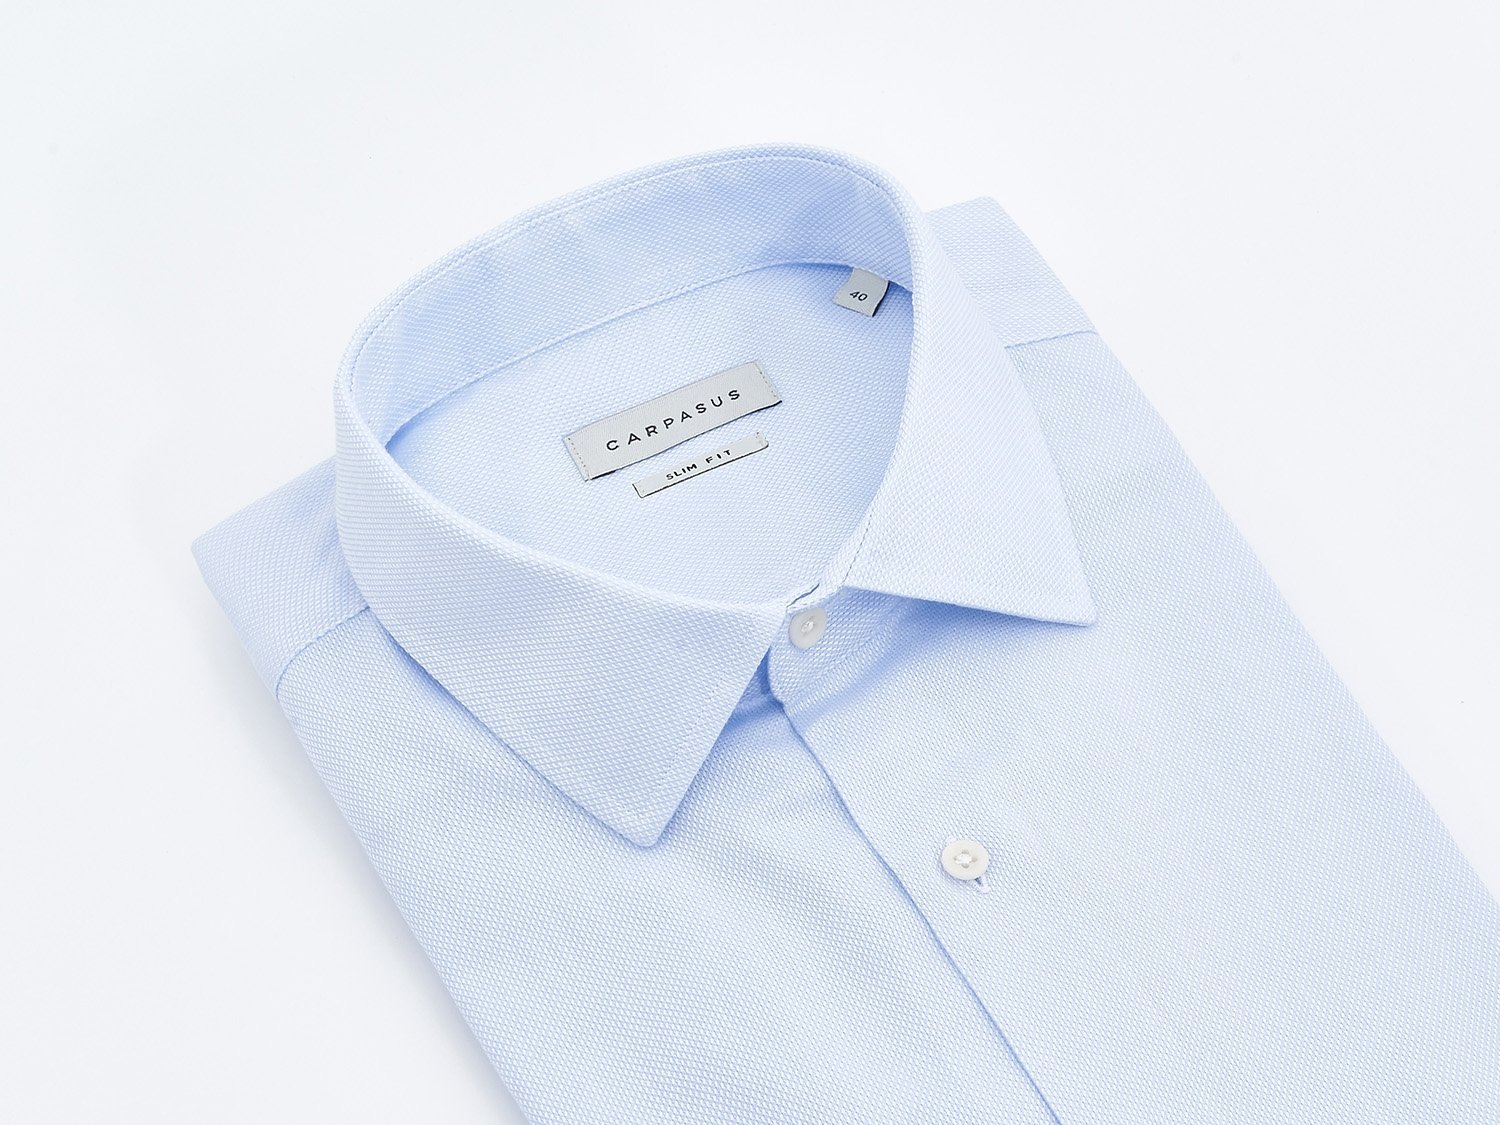 carpasus sustainable organic cotton dress shirt porto lightblue. Nachhaltiges Carpasus Businesshemd aus Bio Baumwolle Porto Hellblau